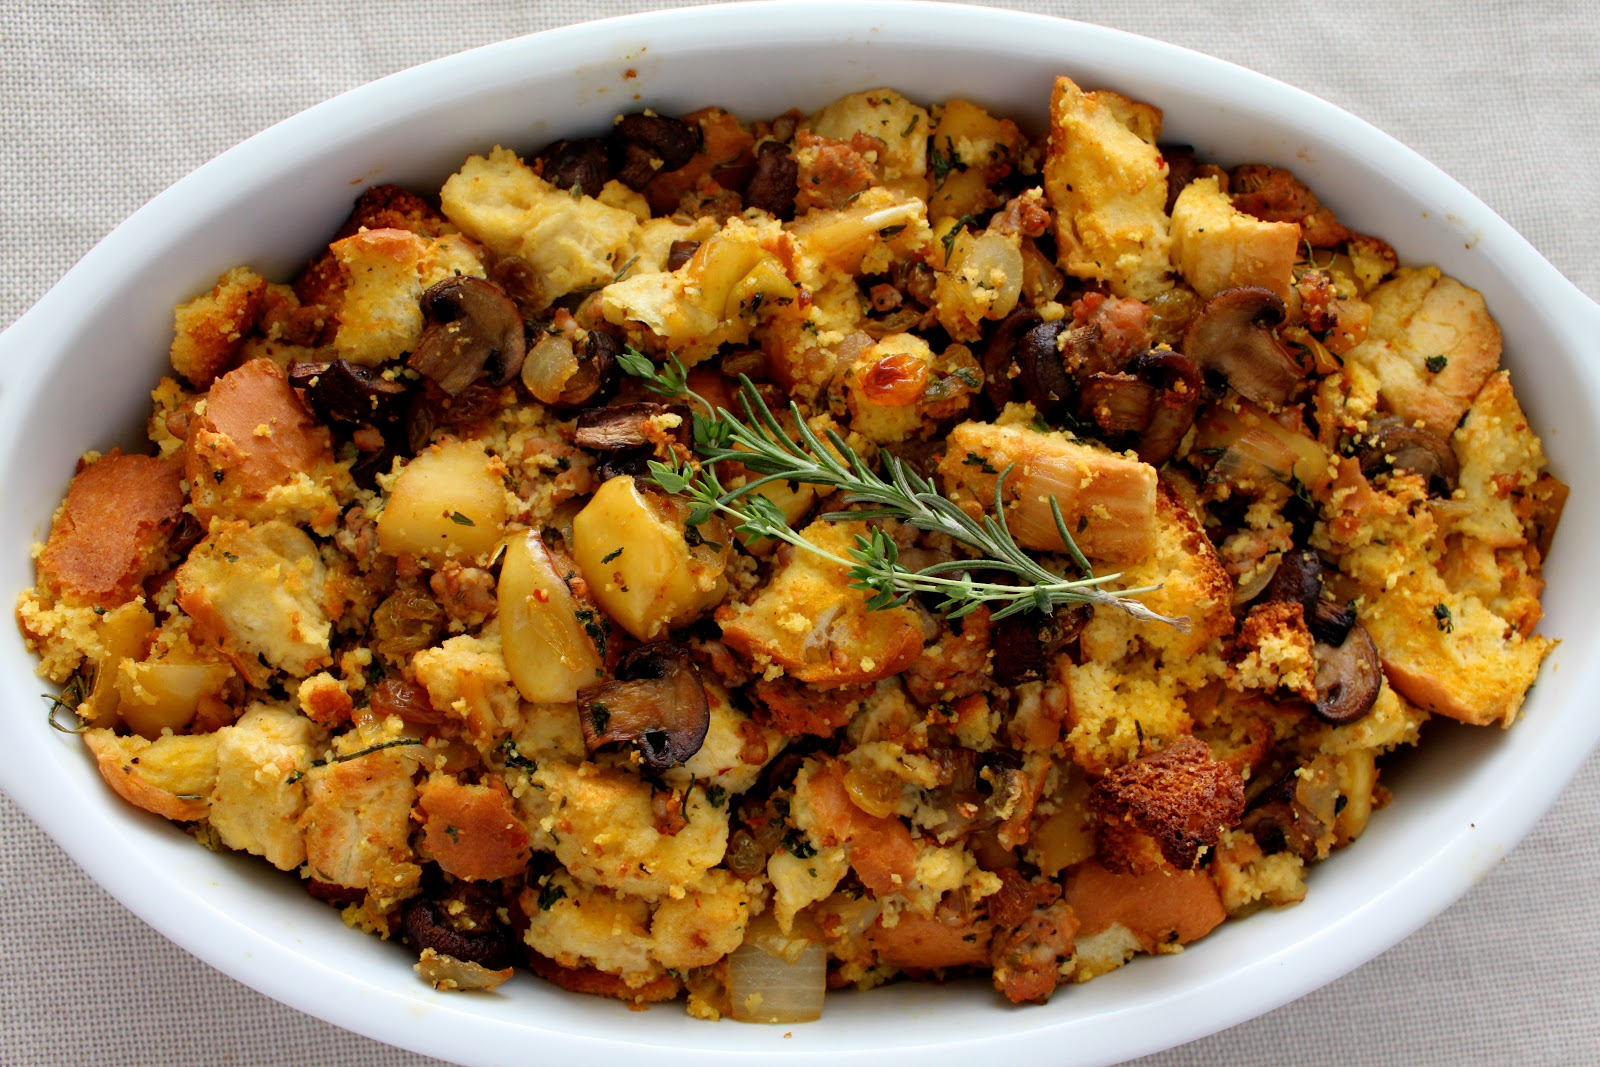 Artisan and Cornbread Stuffing with Apples and Italian Sausage